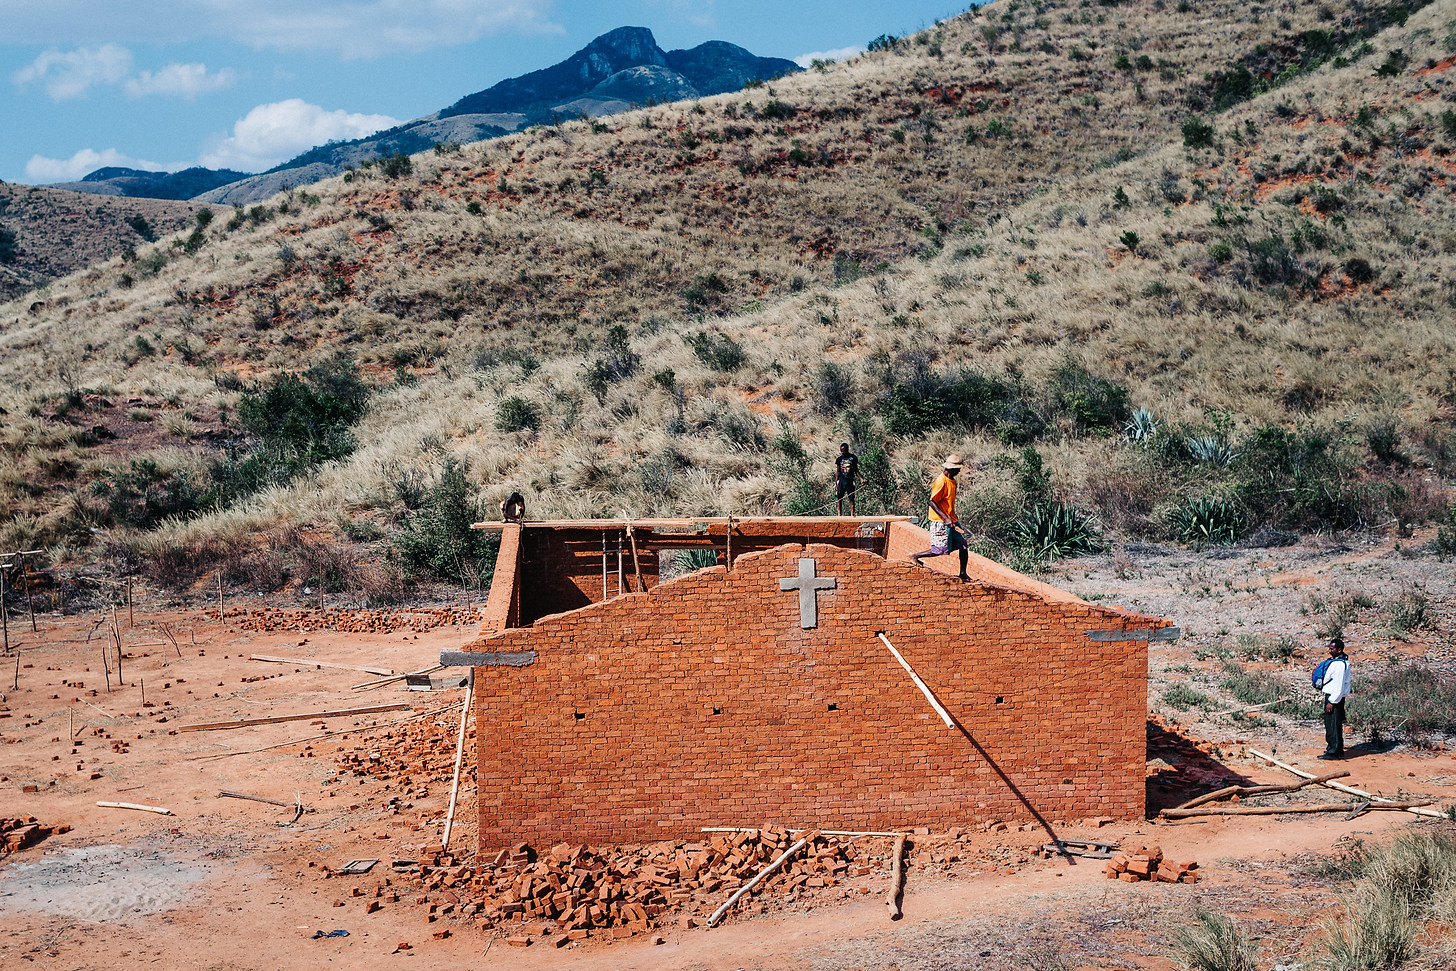 Church construction in Madagascar. The roof is financed from churches in Germany, while the building is constructed by the local church. Photo: David Vogt.